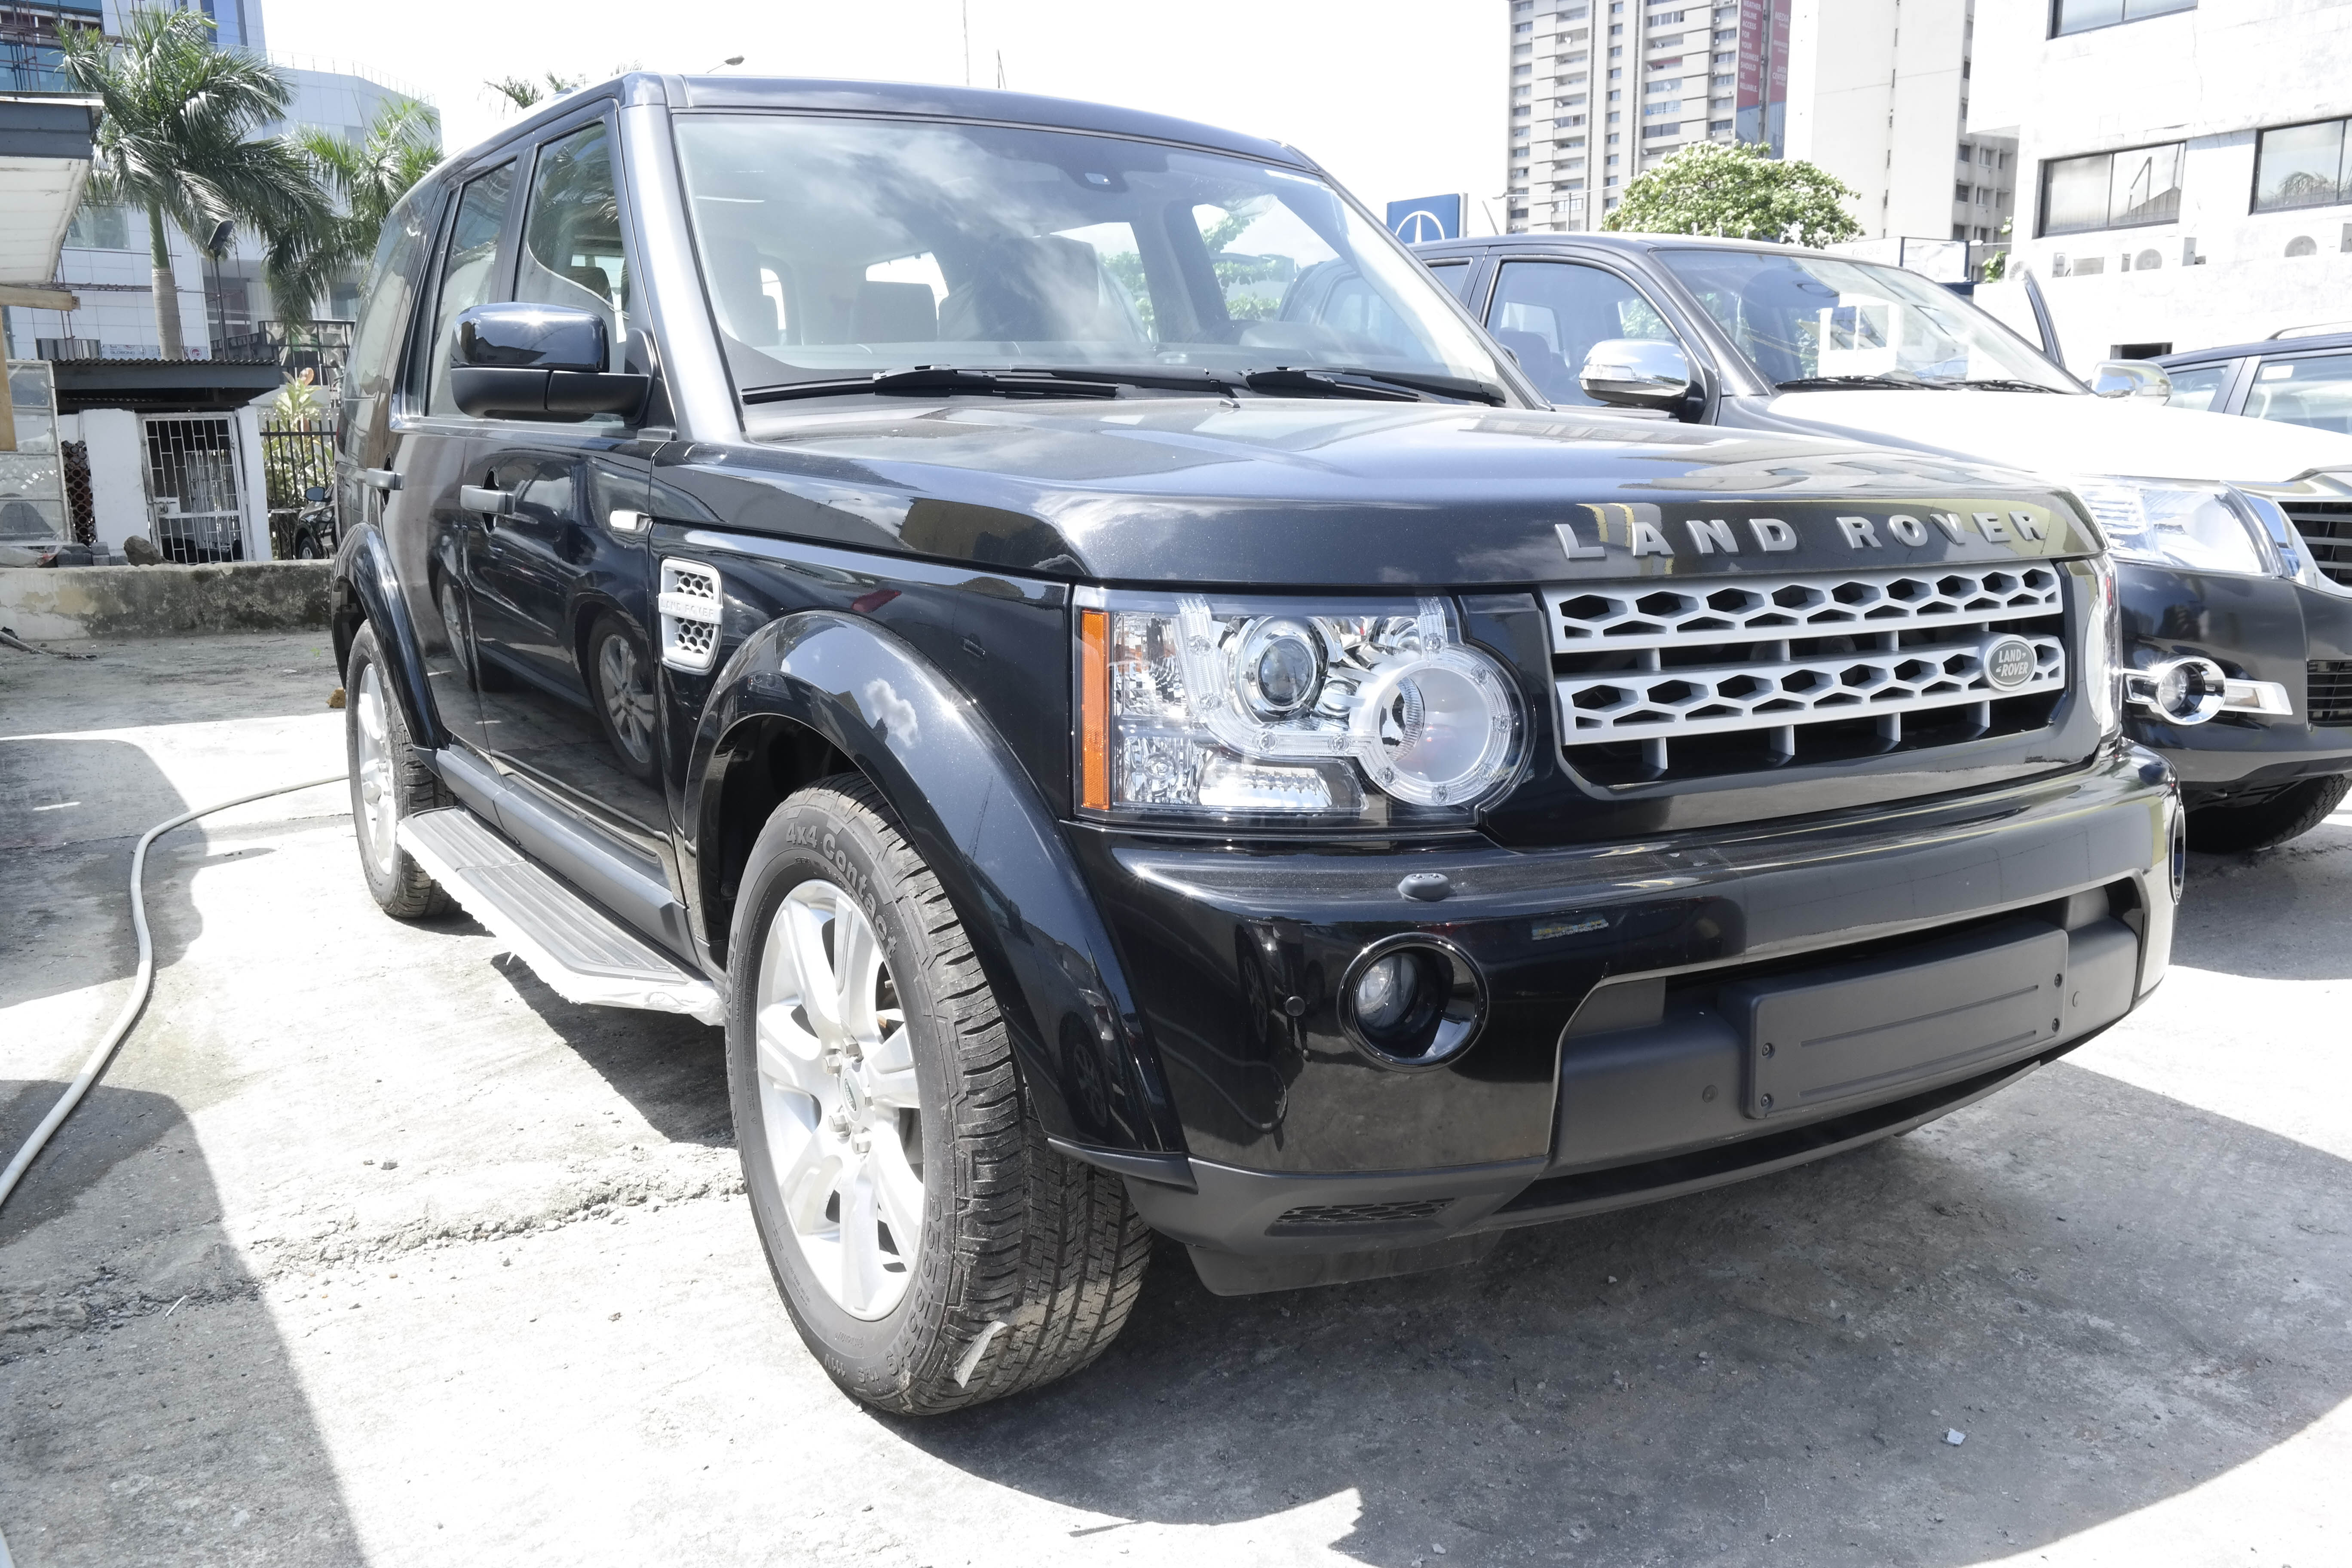 details for durham in inventory land s at nc landrover auto sale rover mart